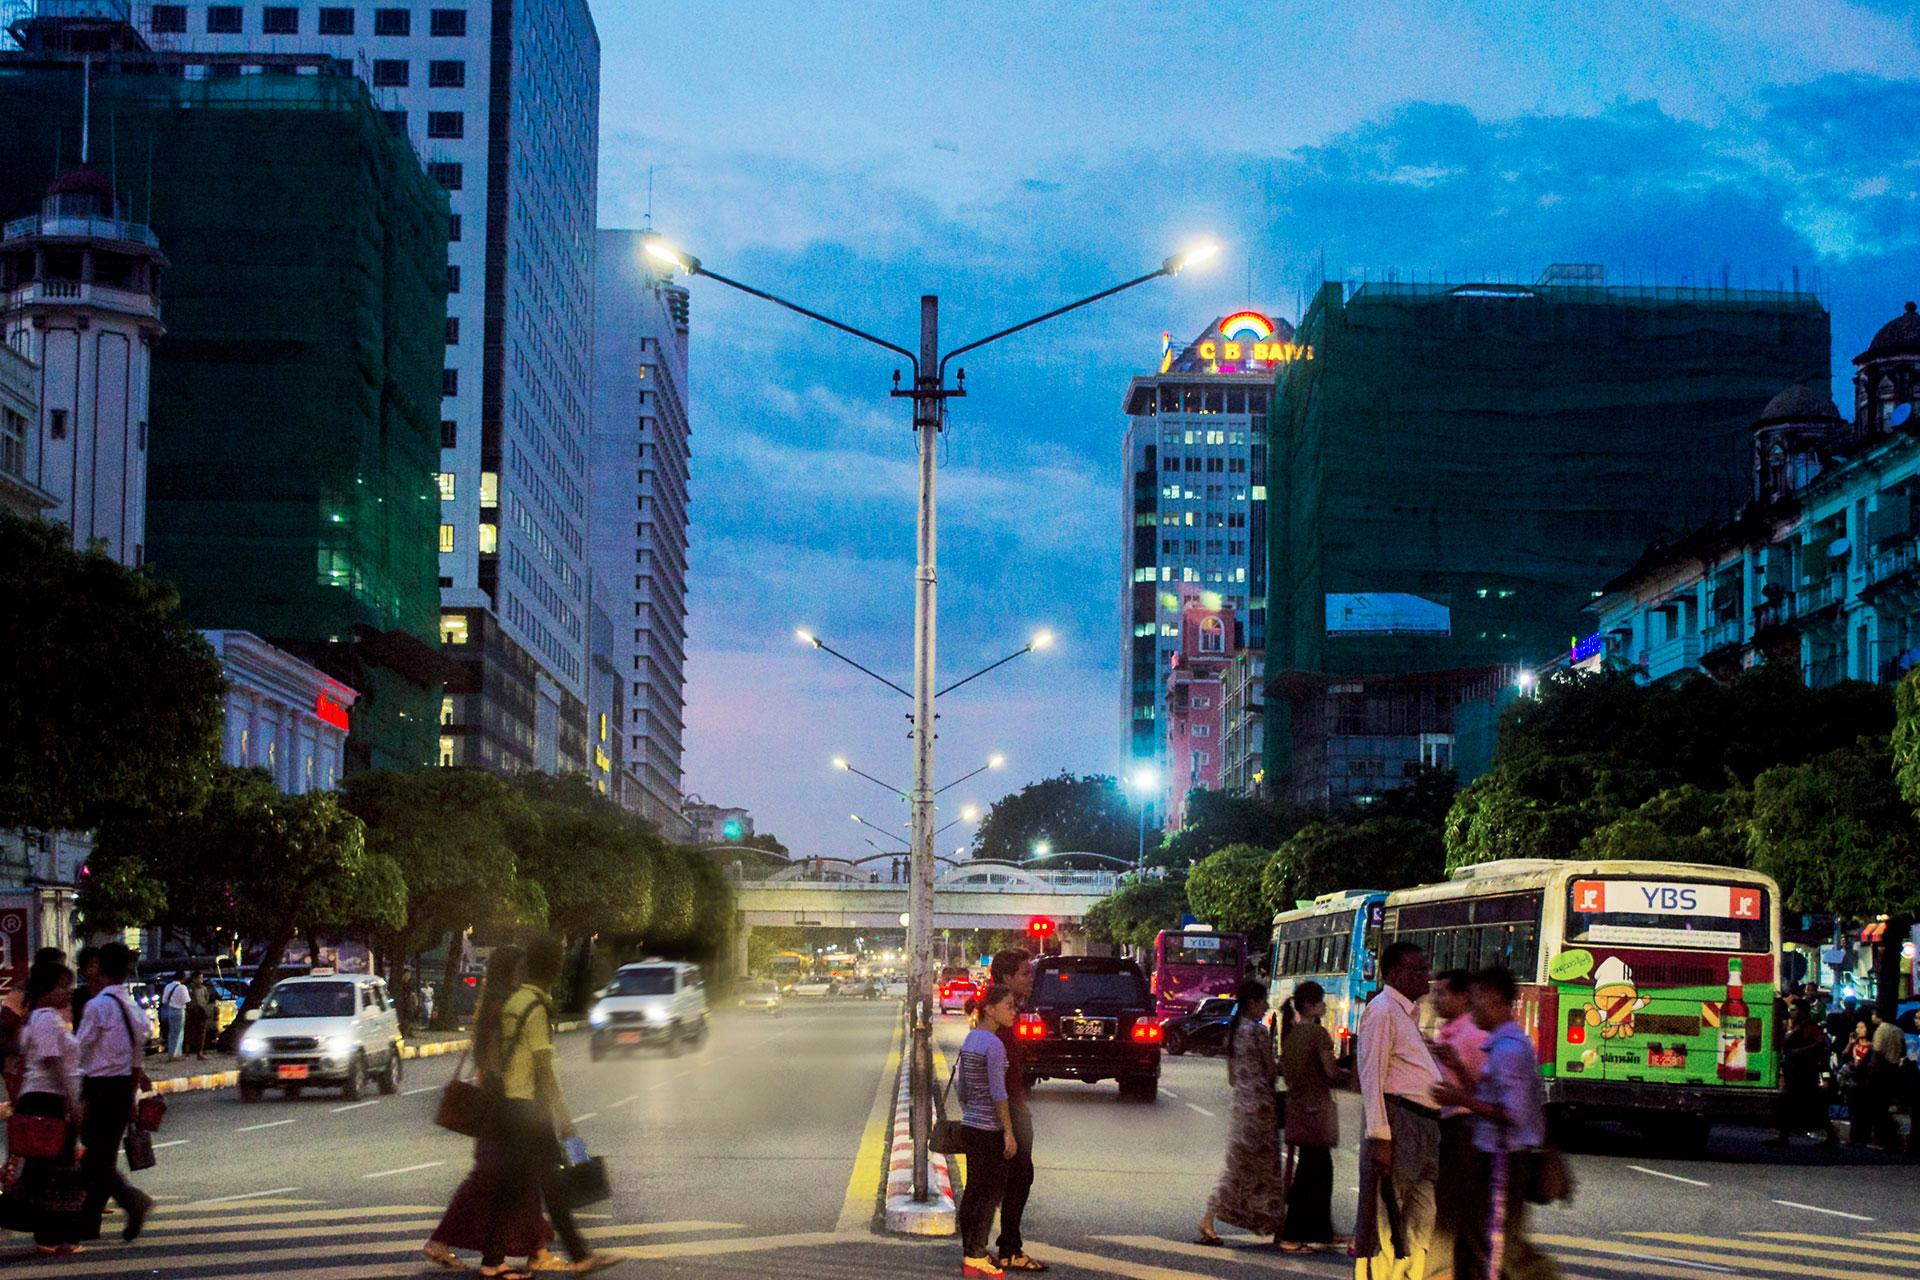 Avento lights up the main arteries of Myanmar's capital city to create safe streets